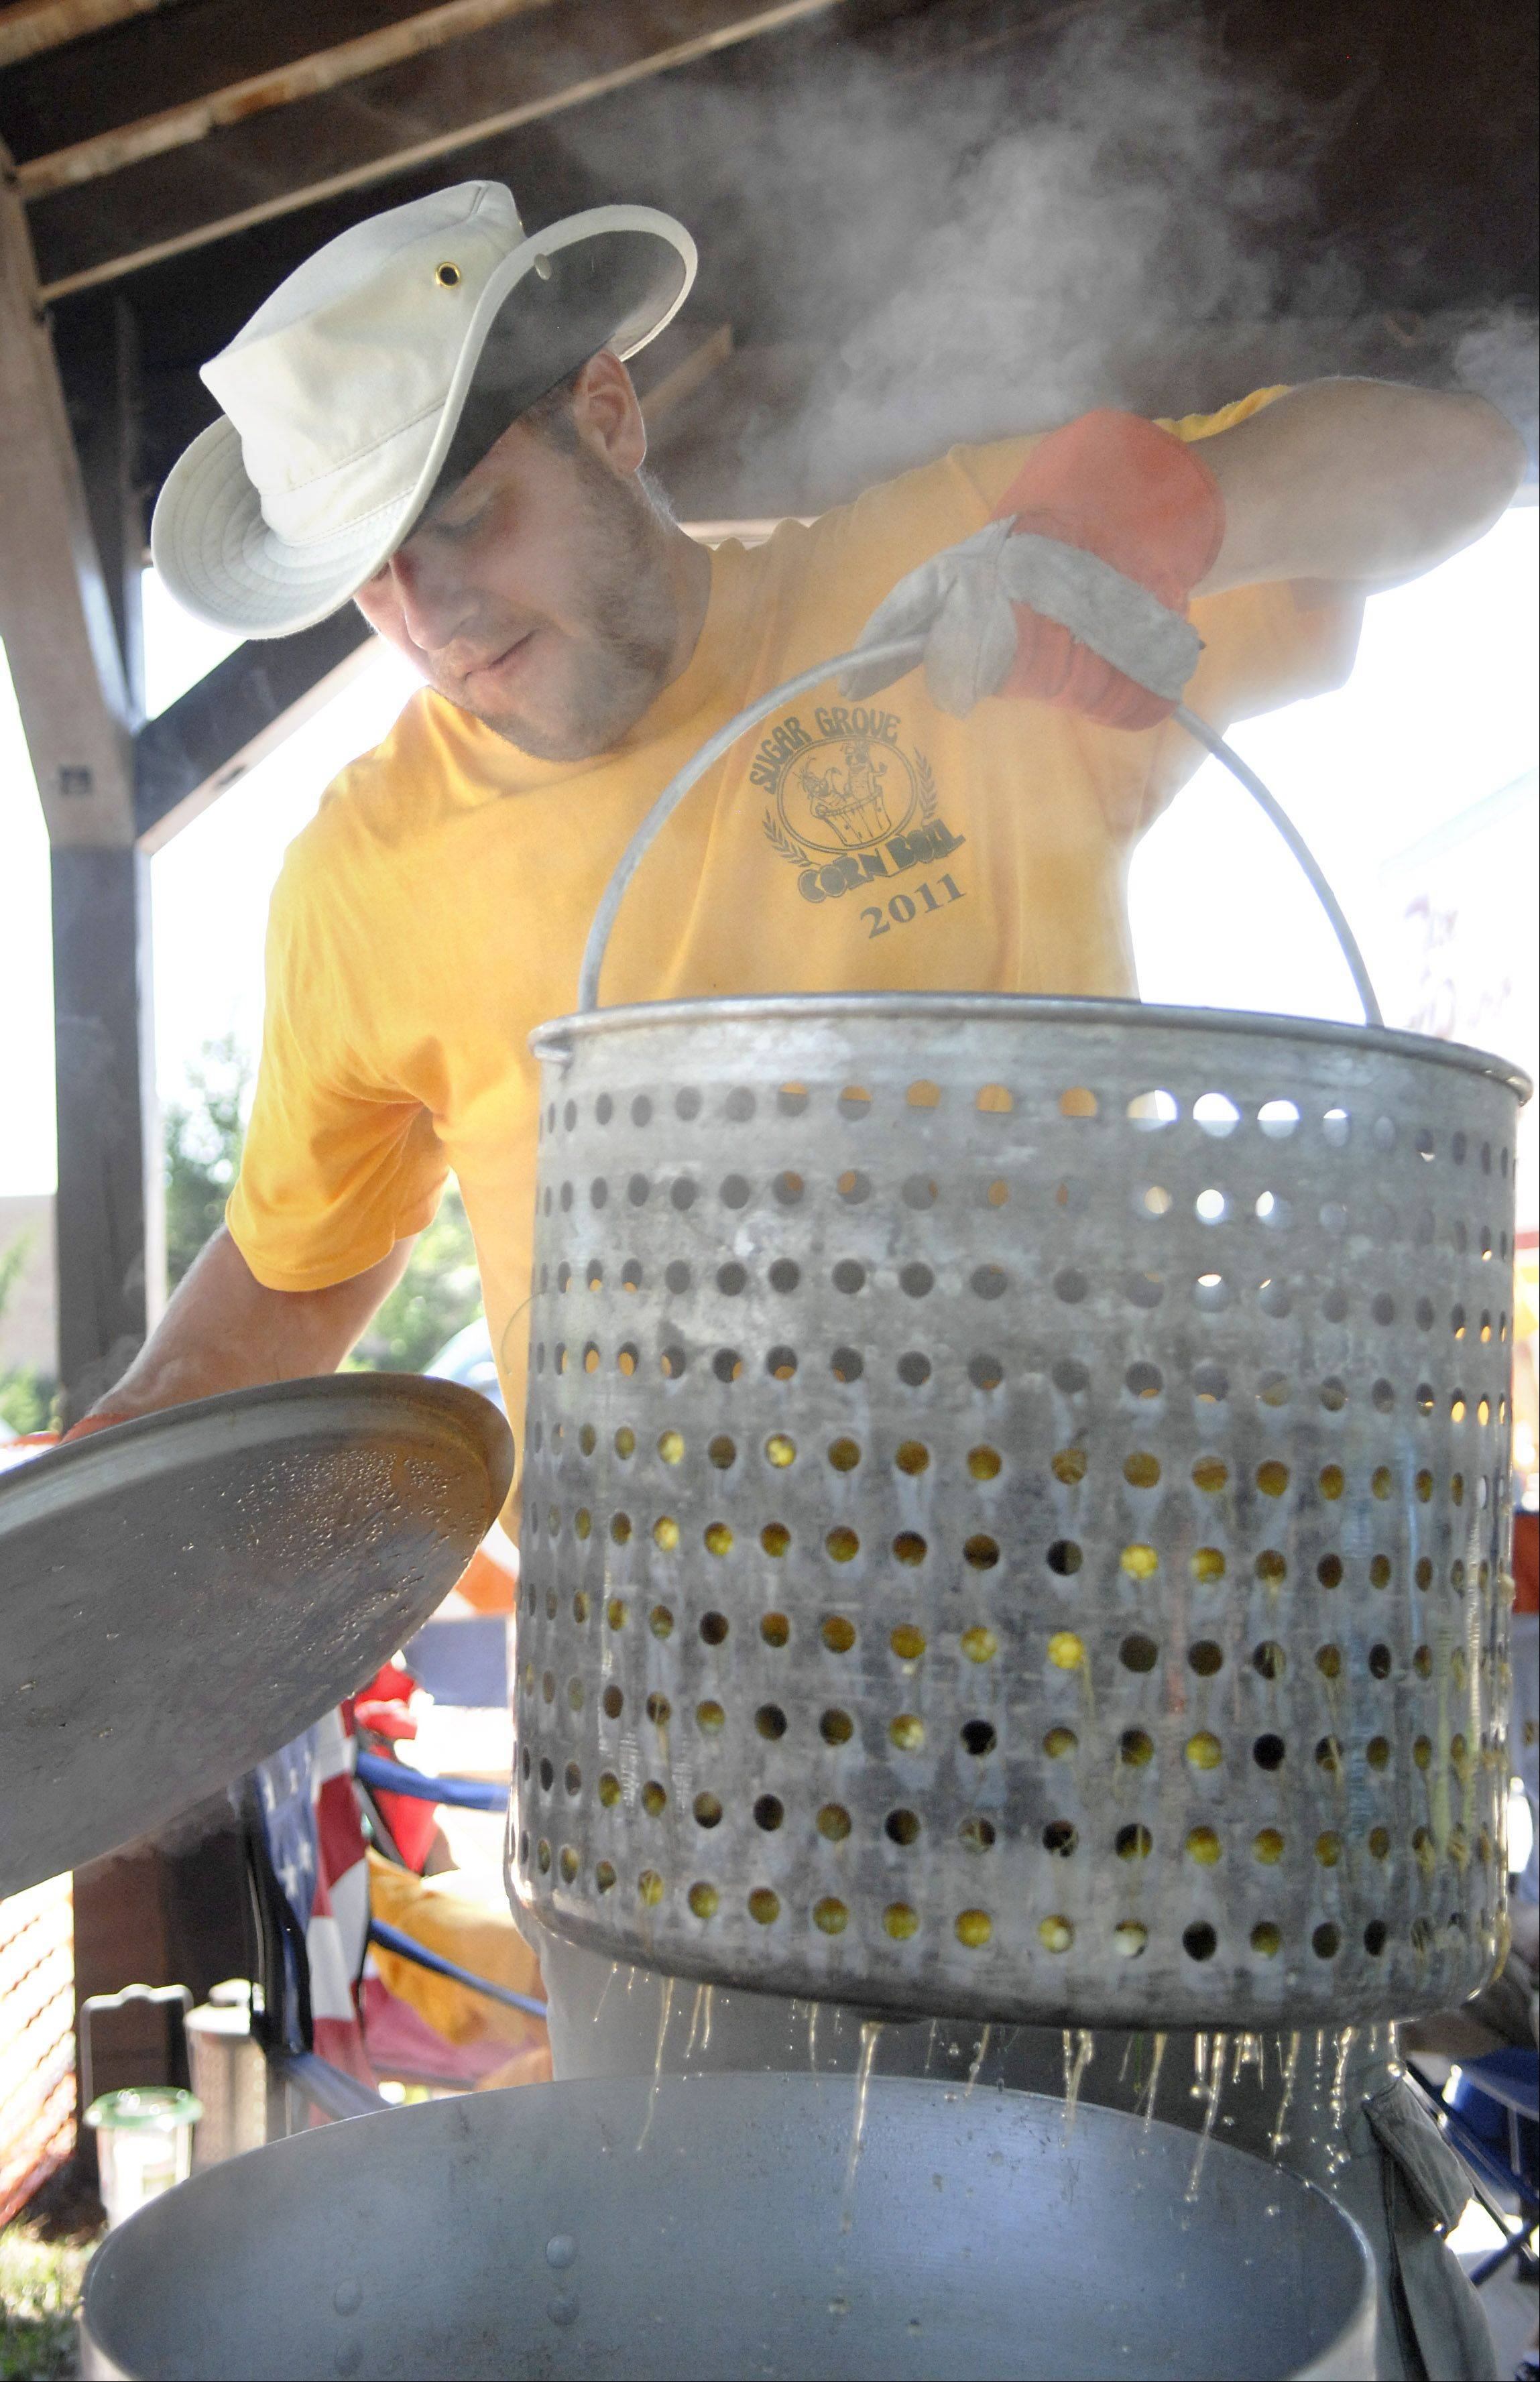 Andrew Drabik of Aurora pulls out a cooked batch of sweet corn at last year's Sugar Grove Corn Boil. Each year, more than 10,000 ears of corn are boiled and served over the festival's three days. This year's corn boil takes place Friday through Sunday, July 27-29, at Volunteer Park.